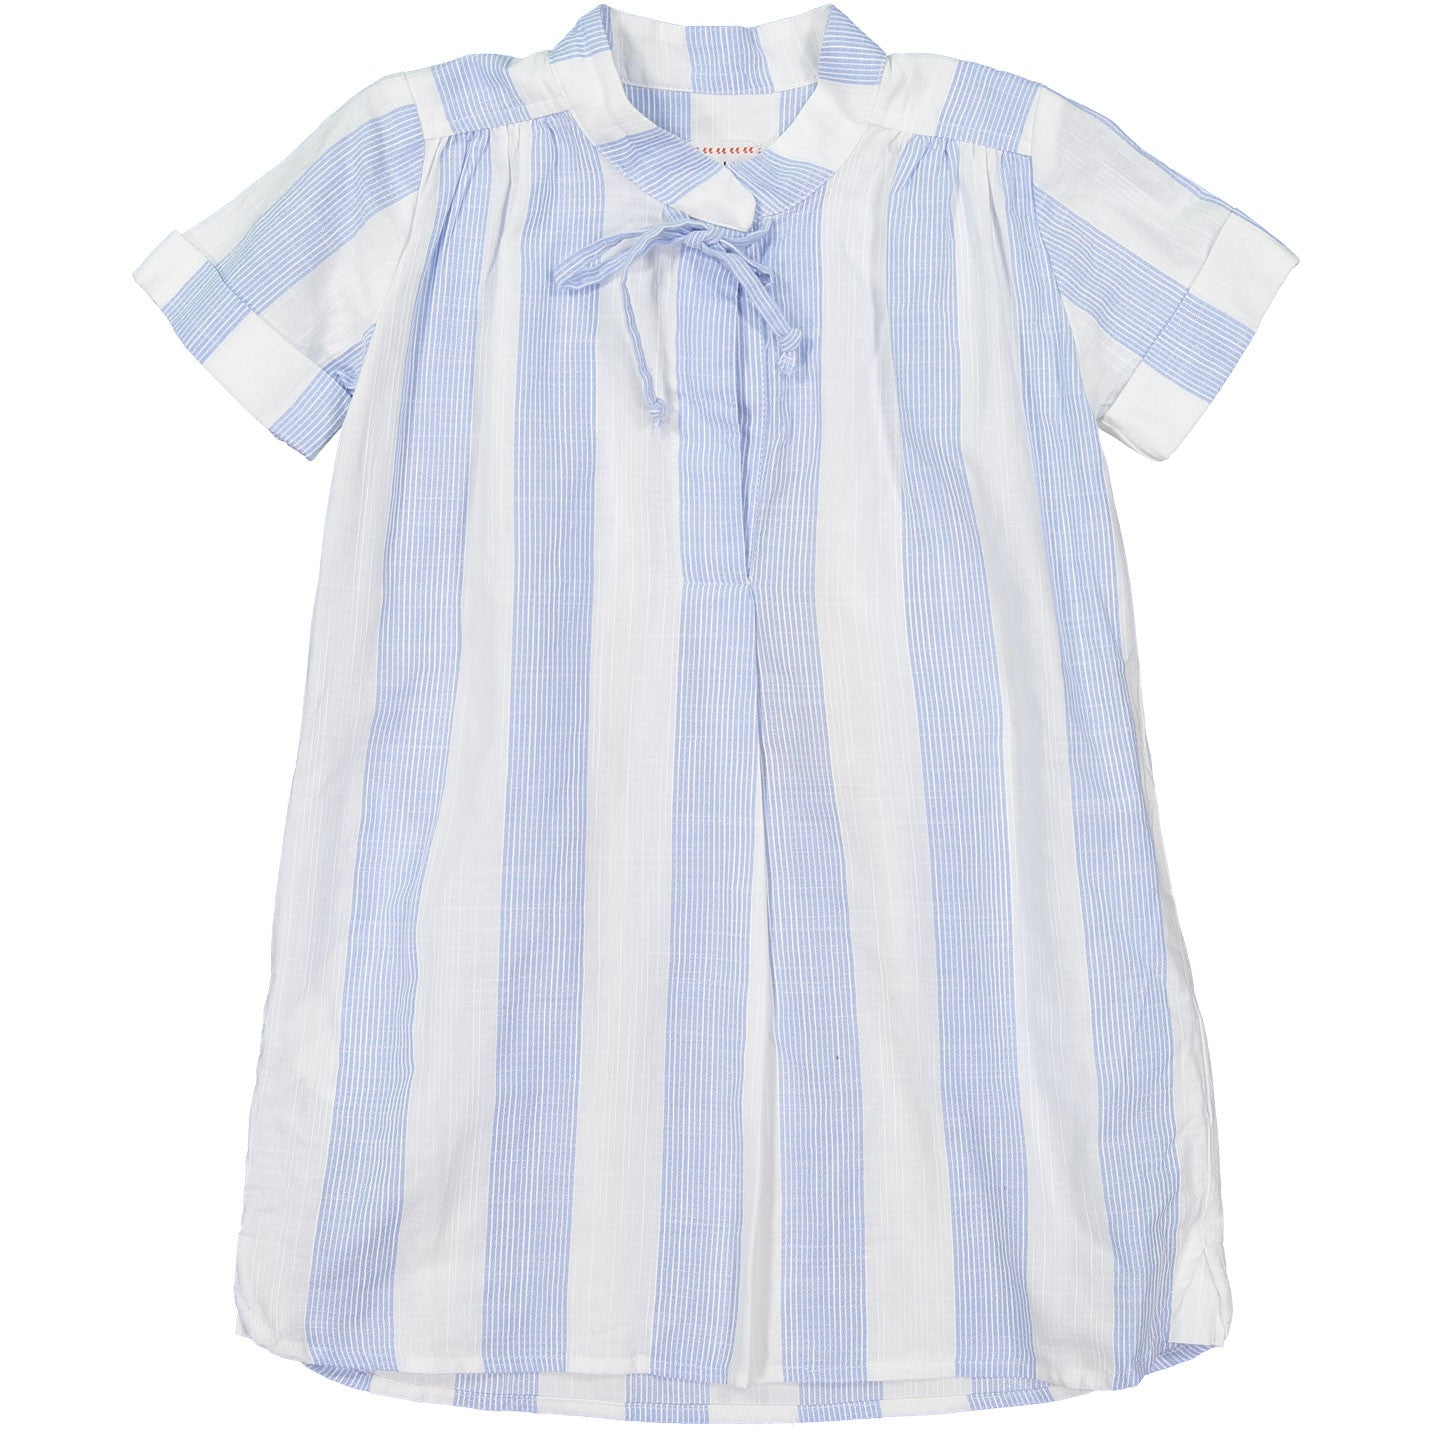 Morley Blue Stripe Finn Dress - Ladida